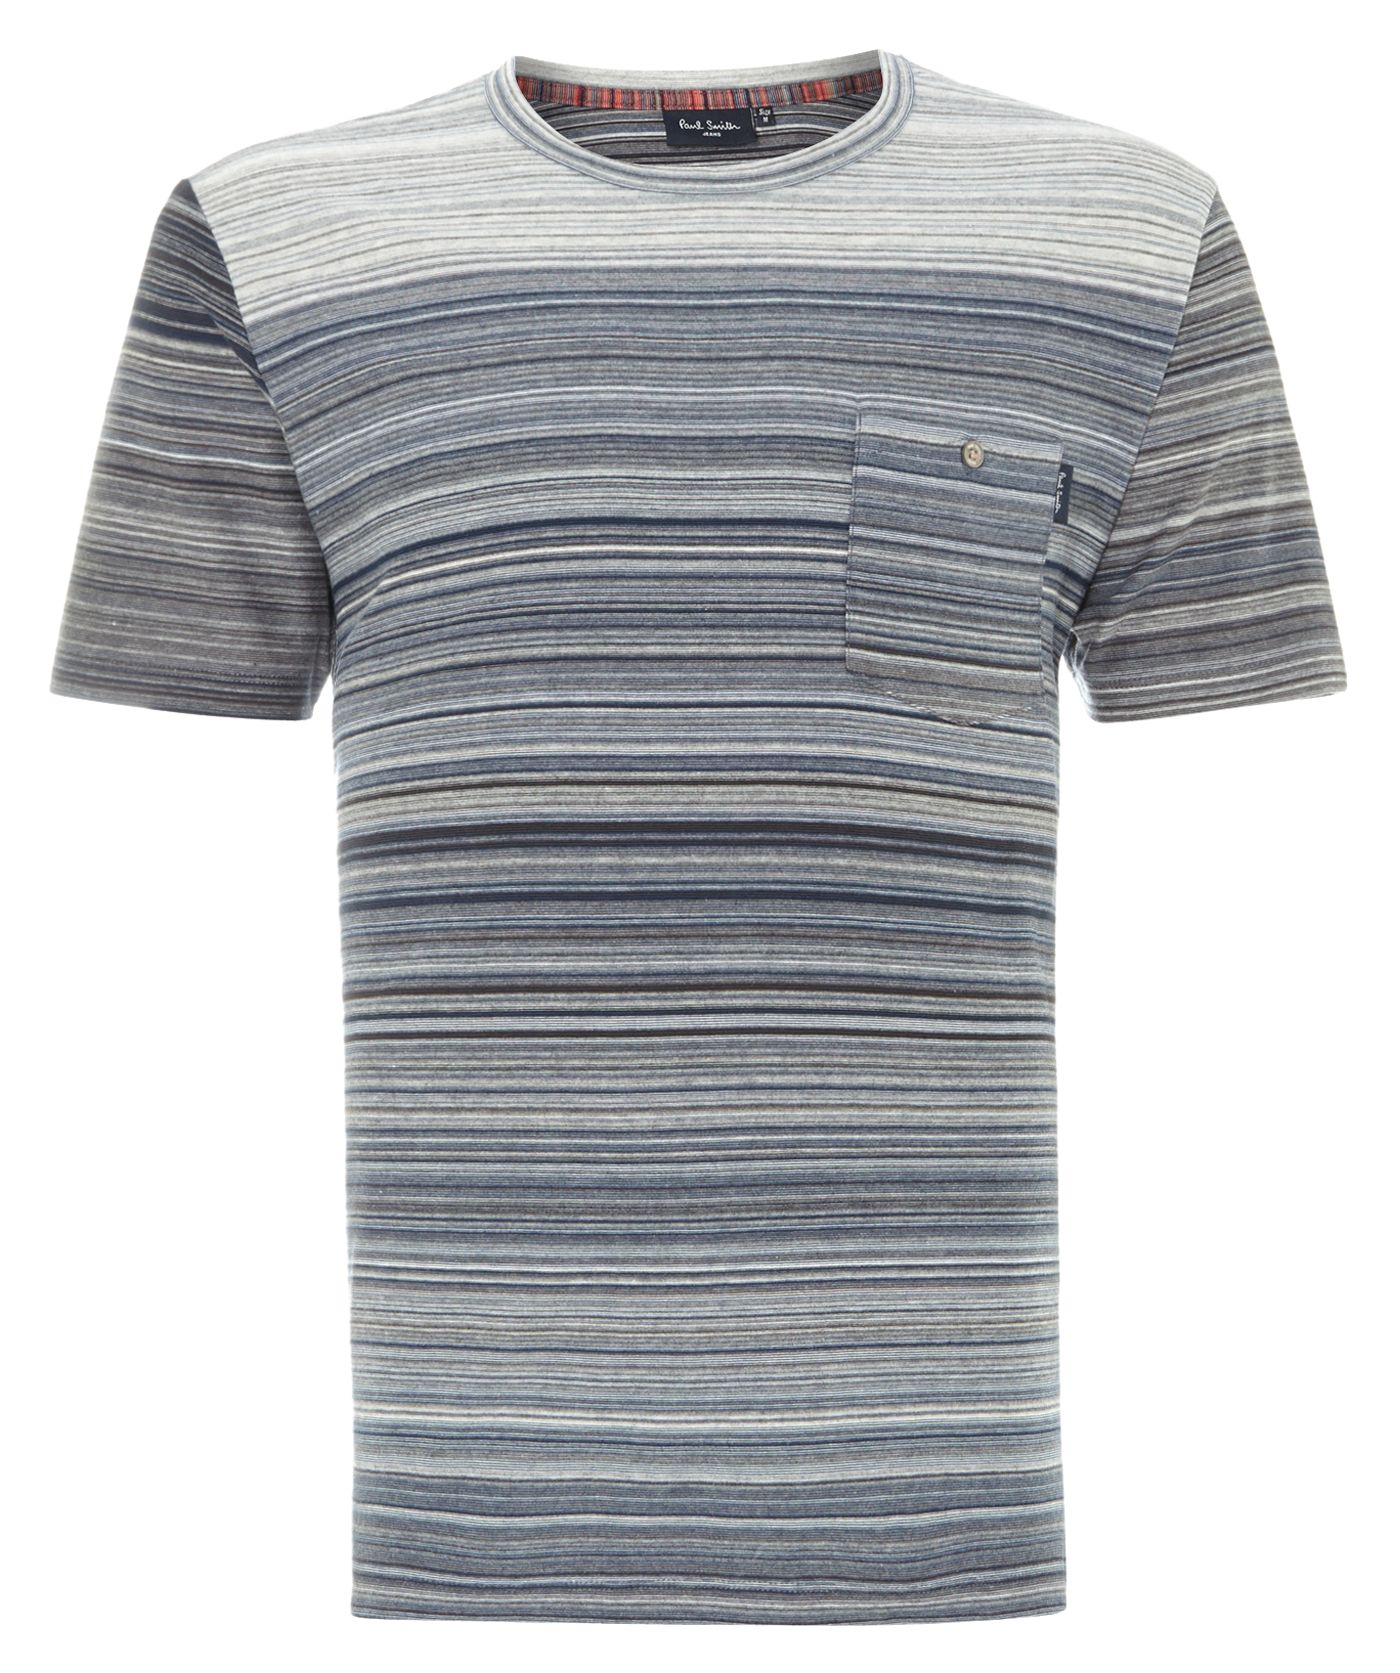 Multi stripe t shirt